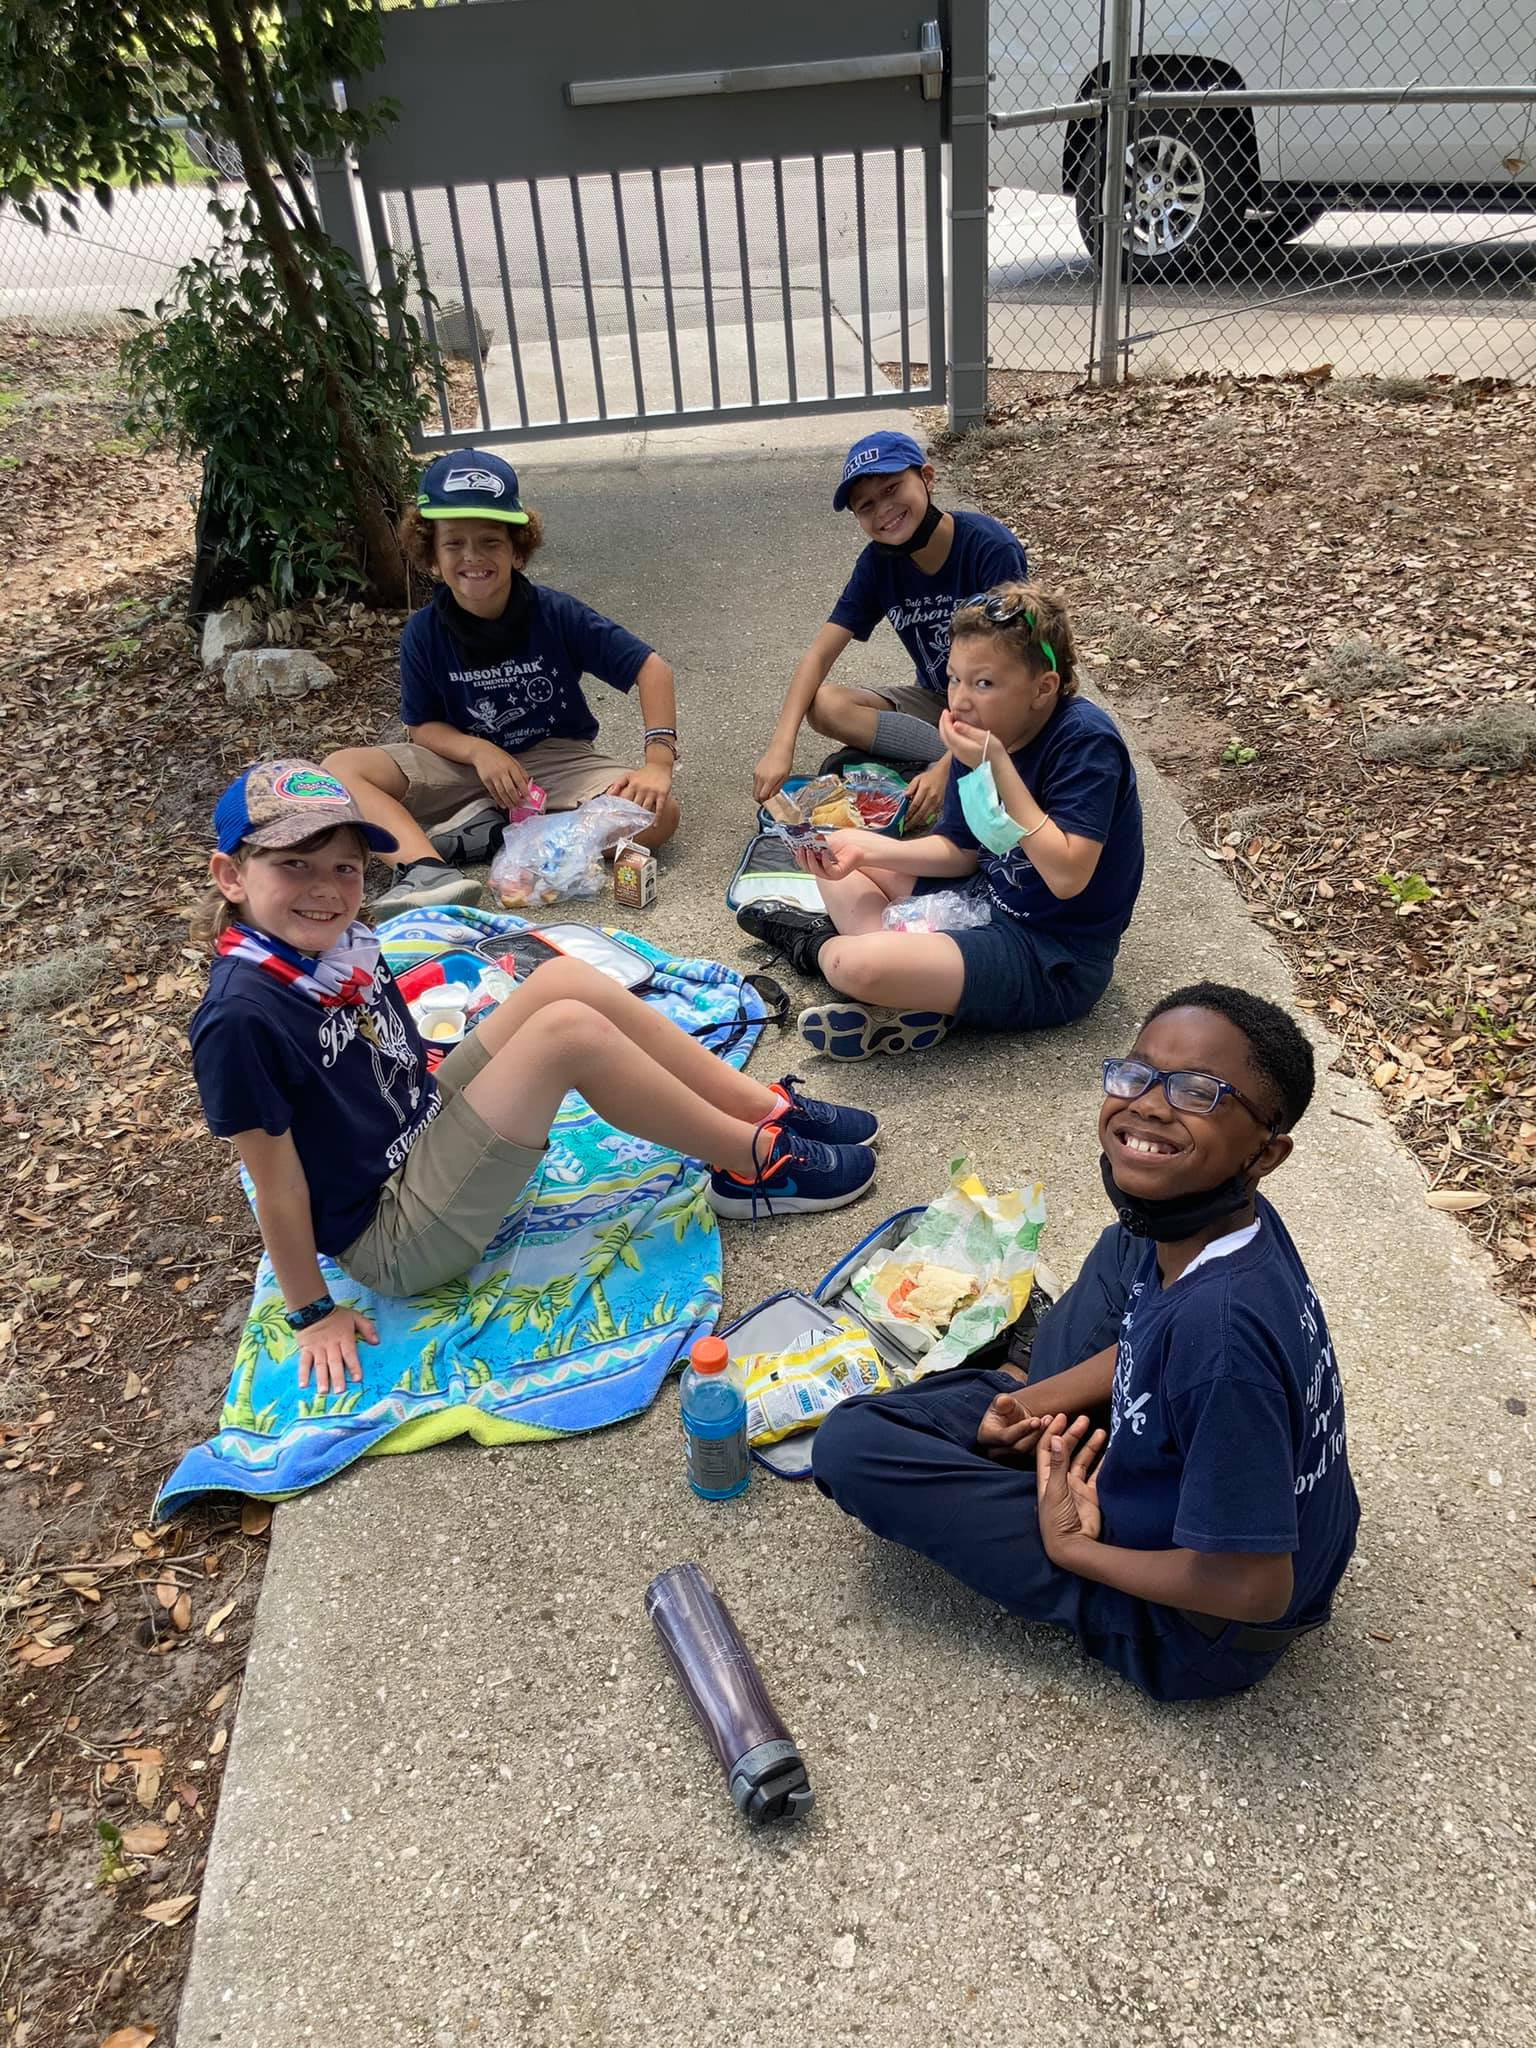 Students enjoying their picnic lunch.